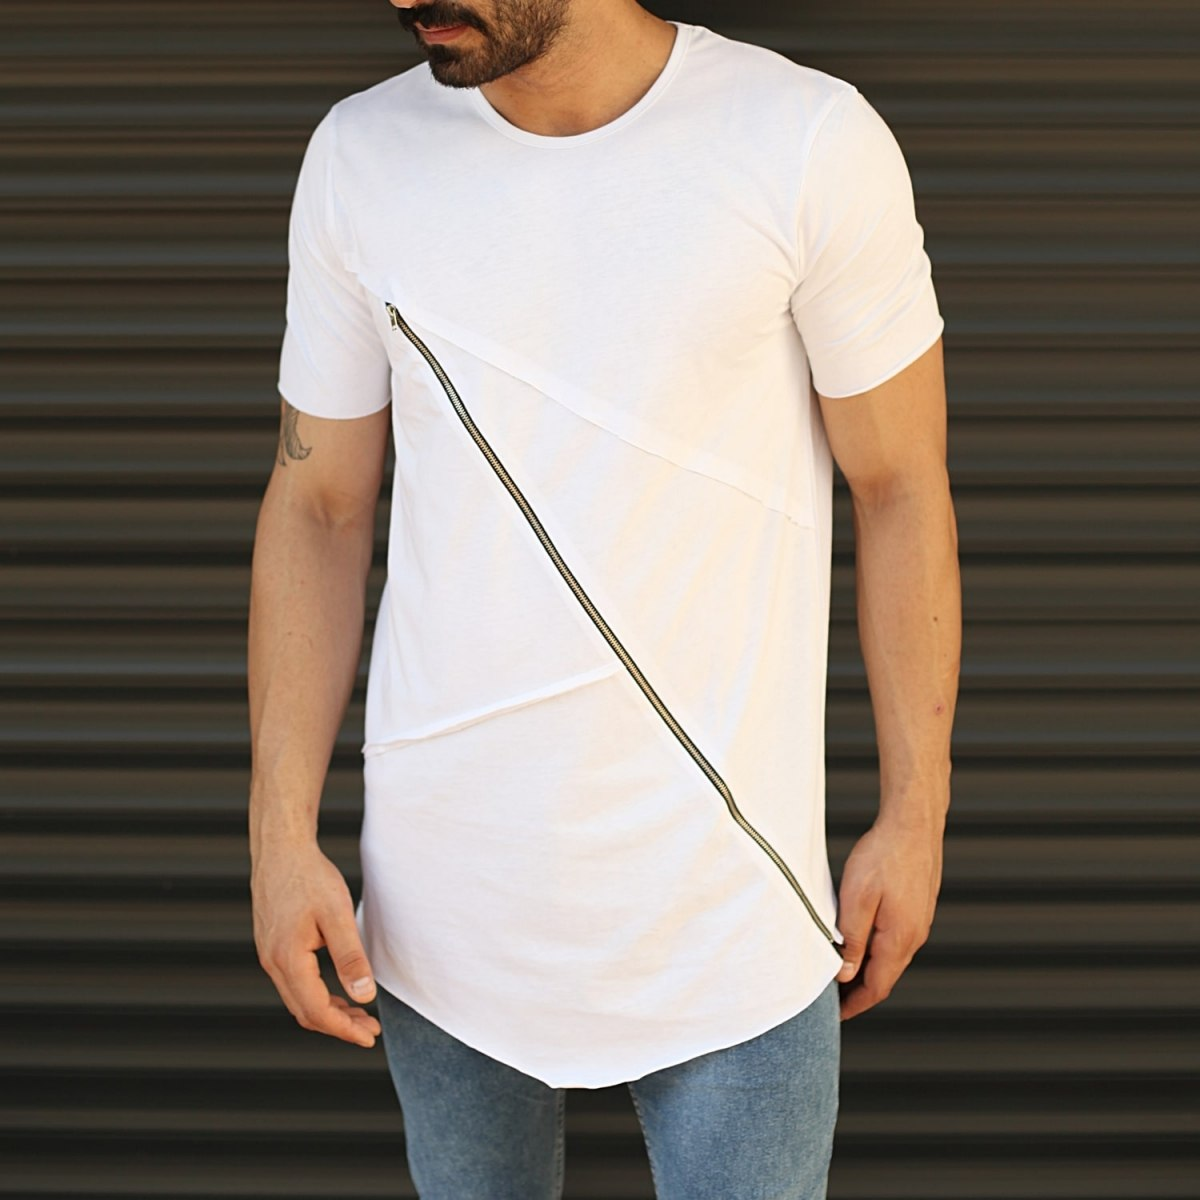 Men's Fitted Cross Zipper Tall T-Shirt White Mv Premium Brand - 1